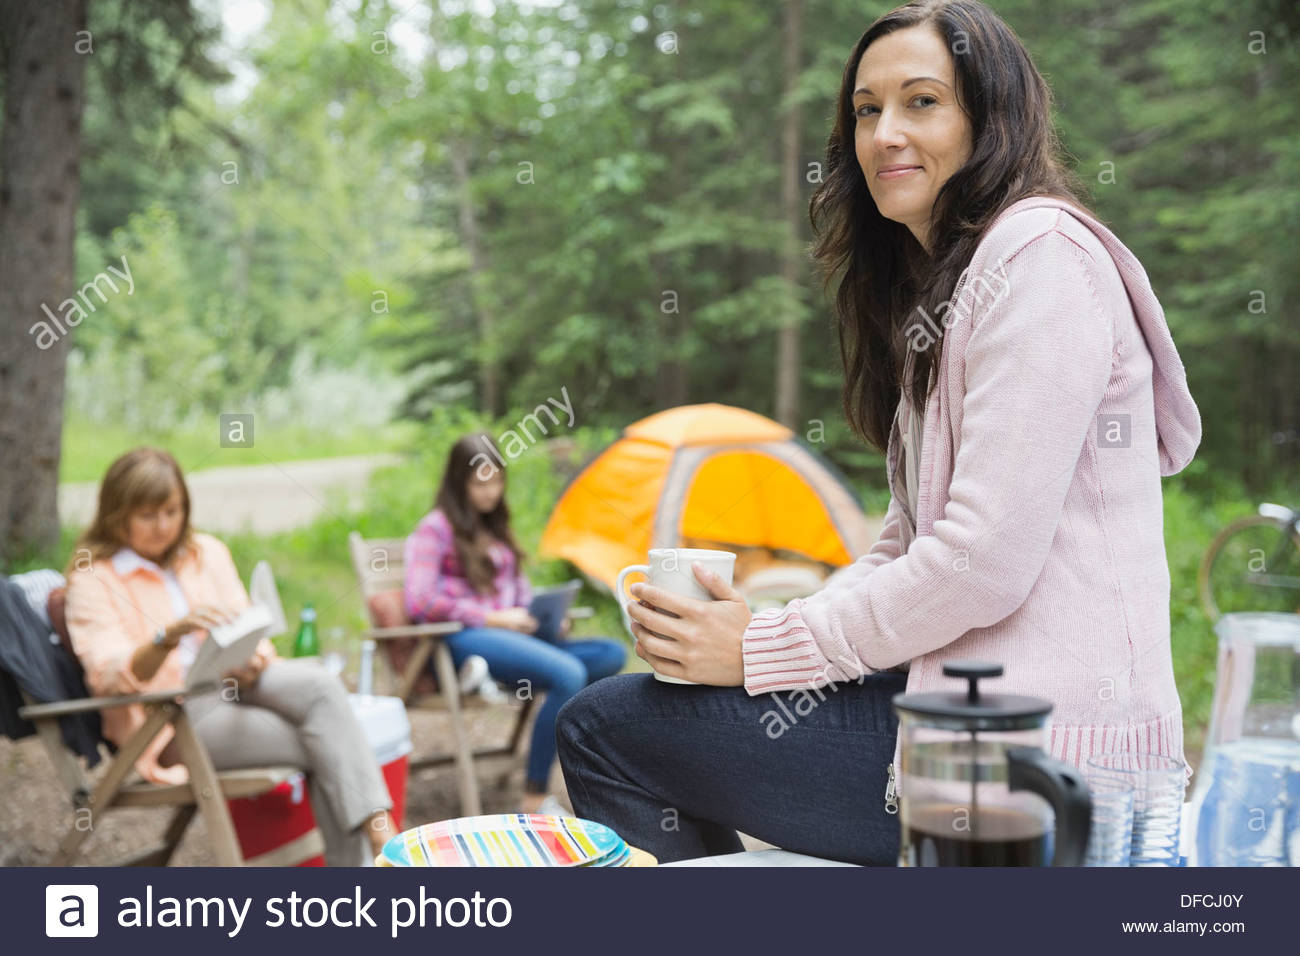 Portrait of woman with coffee mug sitting on table at campsite - Stock Image